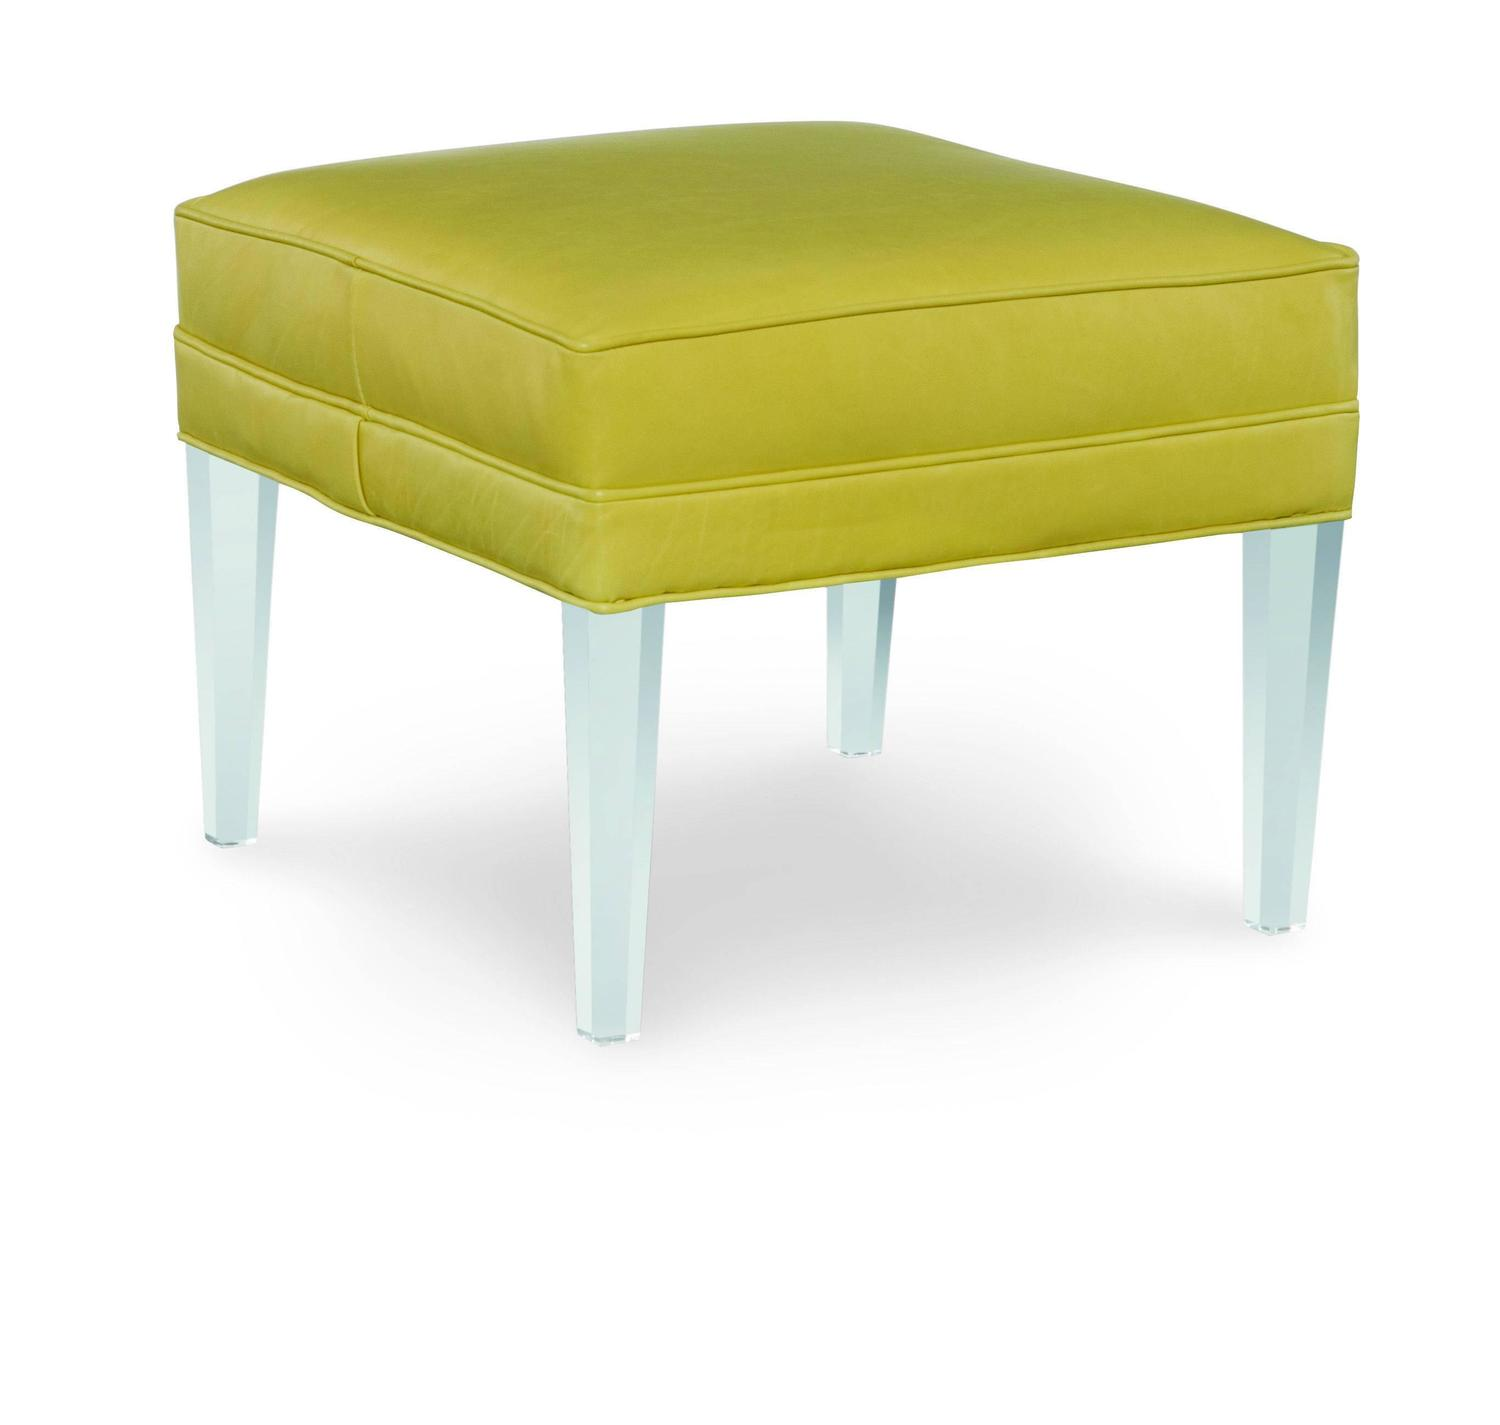 Fabric And Acrylic Ottoman For Sale At 1stdibs